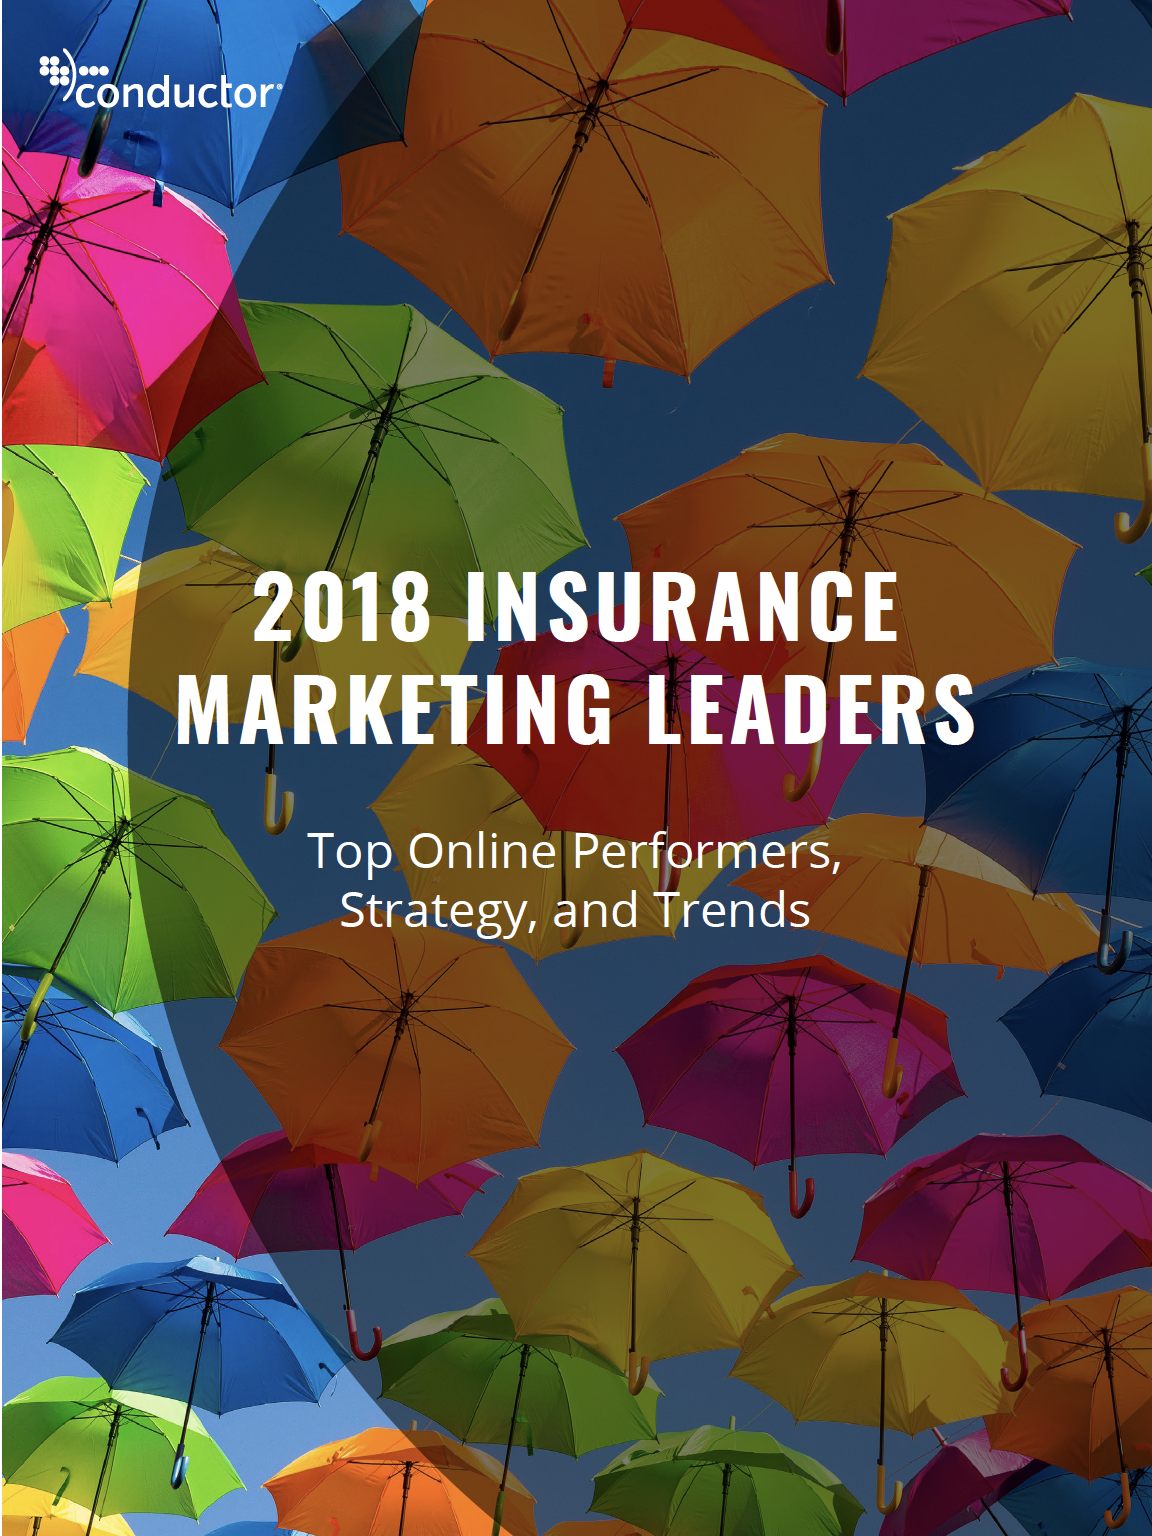 2018 trends, leaders, and strategies in insurance marketing organic search